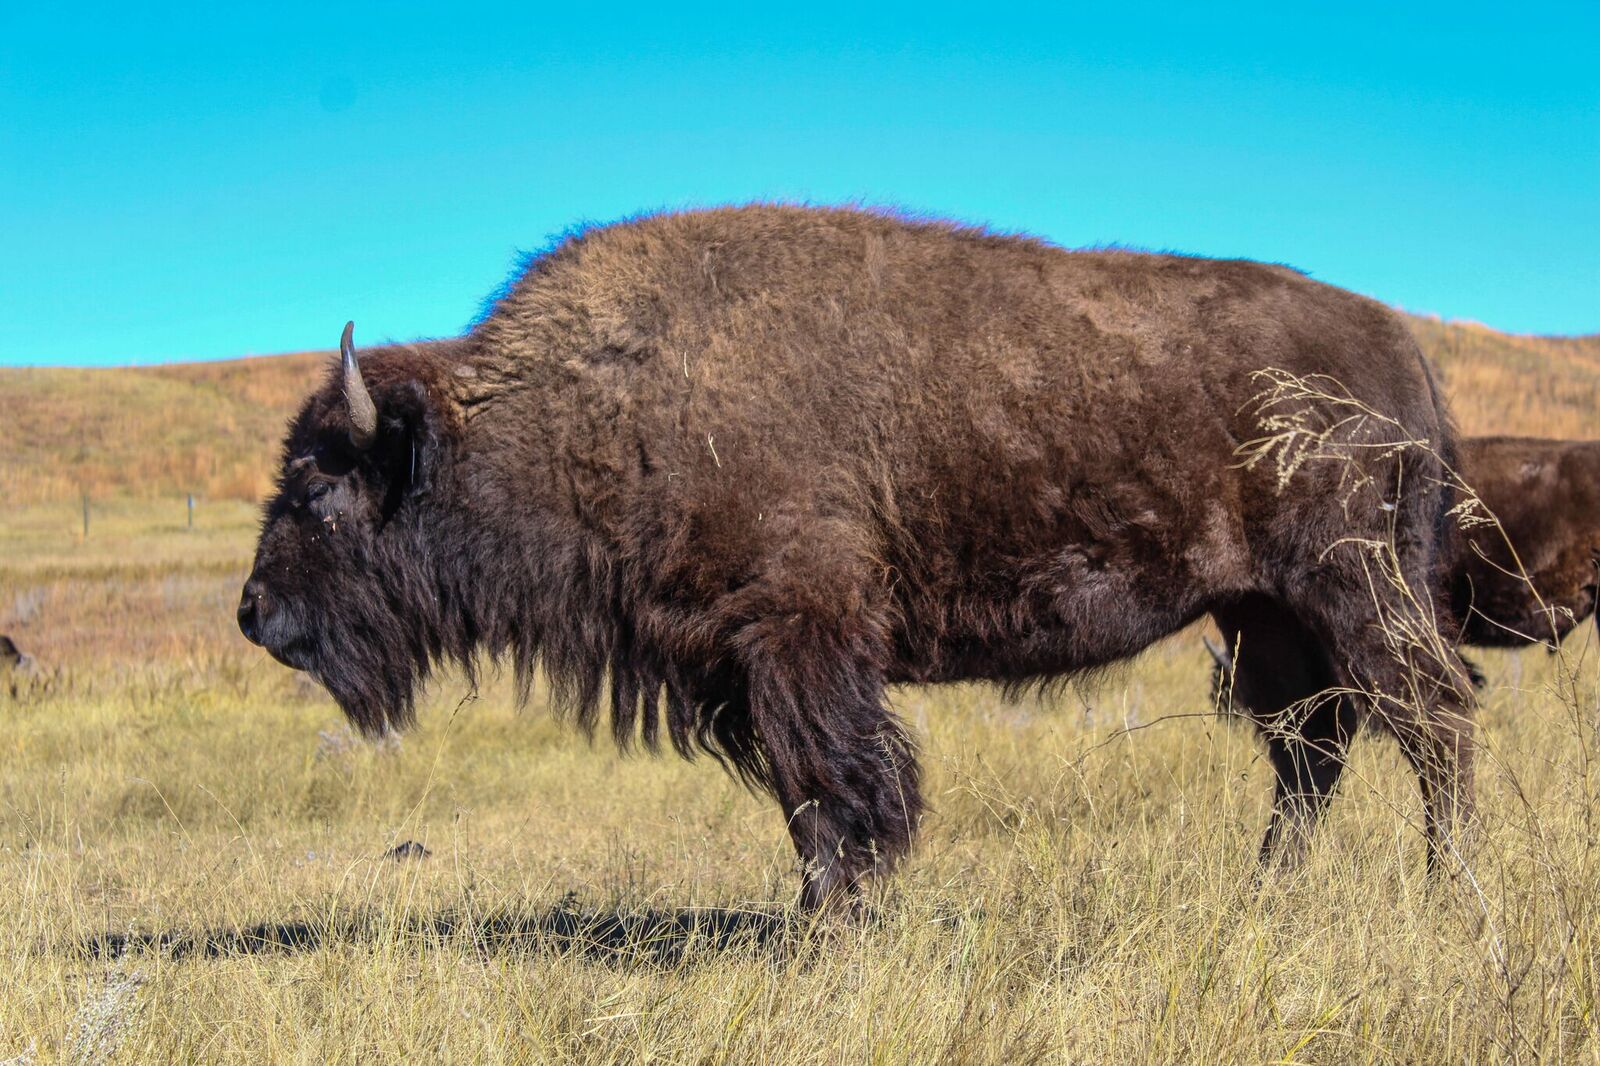 PHOTO CREDIT: Unnamed Custer State Park Photographer